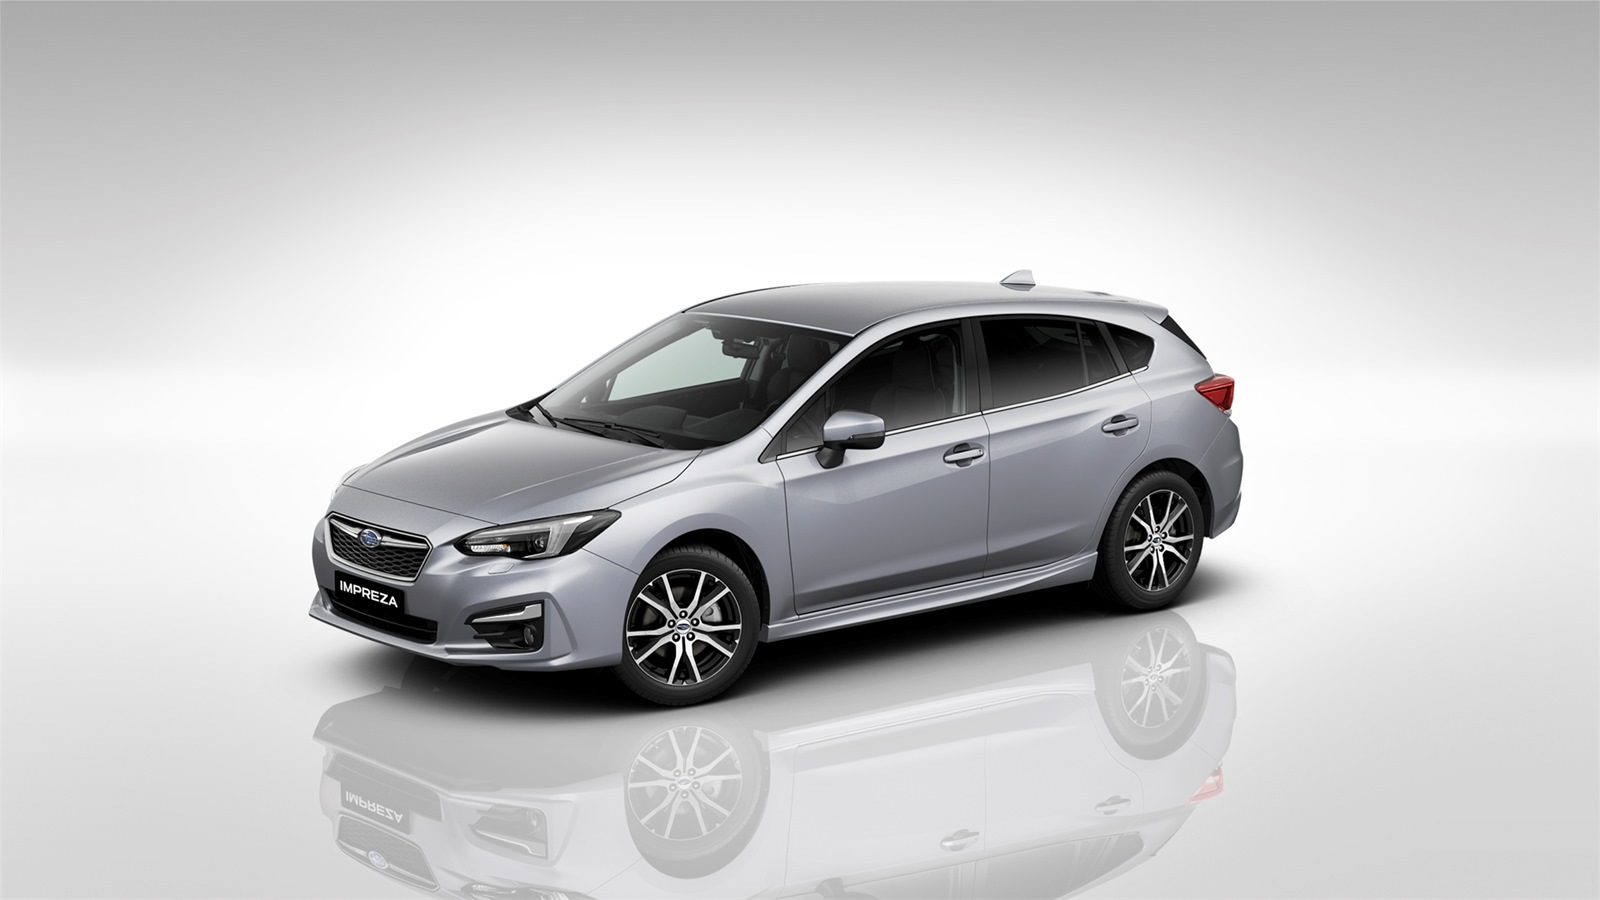 subaru impreza - Available in Ice Silver Metallic